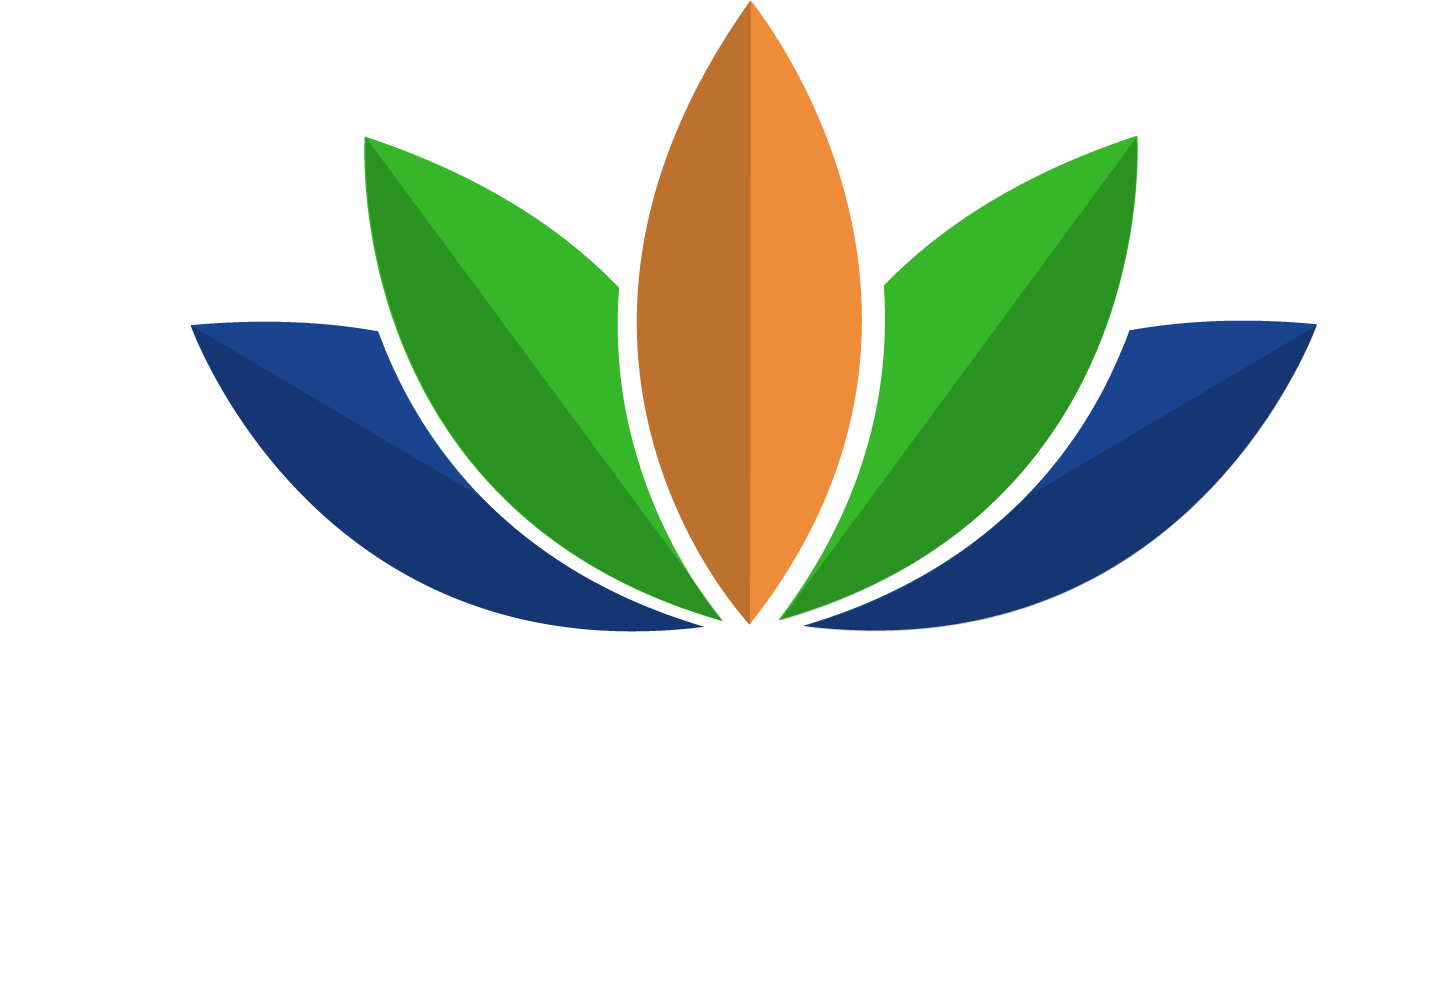 Mayfair Village